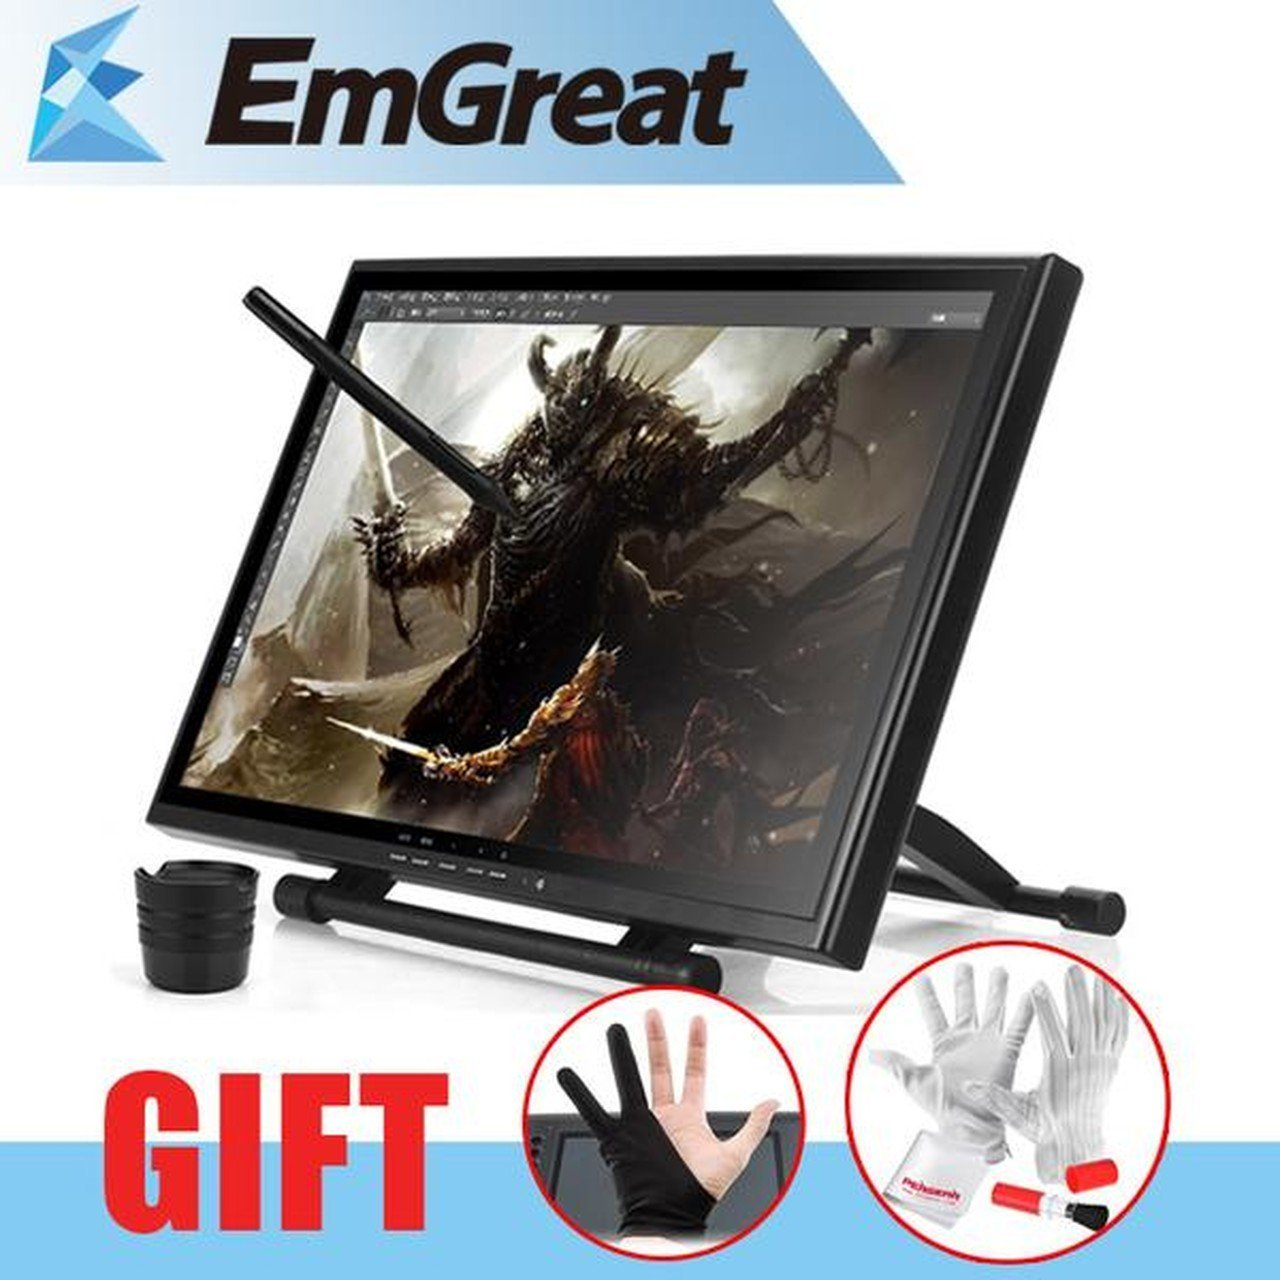 UGEE UG-1910B Professional 19'' 5MS LCD Art Graphic Tablet Drawing Digitalizer Board + Glove Gift (UGEE UG-1910B Professional 19'' 5MS LCD Art Graphic Tablet Drawing Digitalizer Board + Glove Gift)